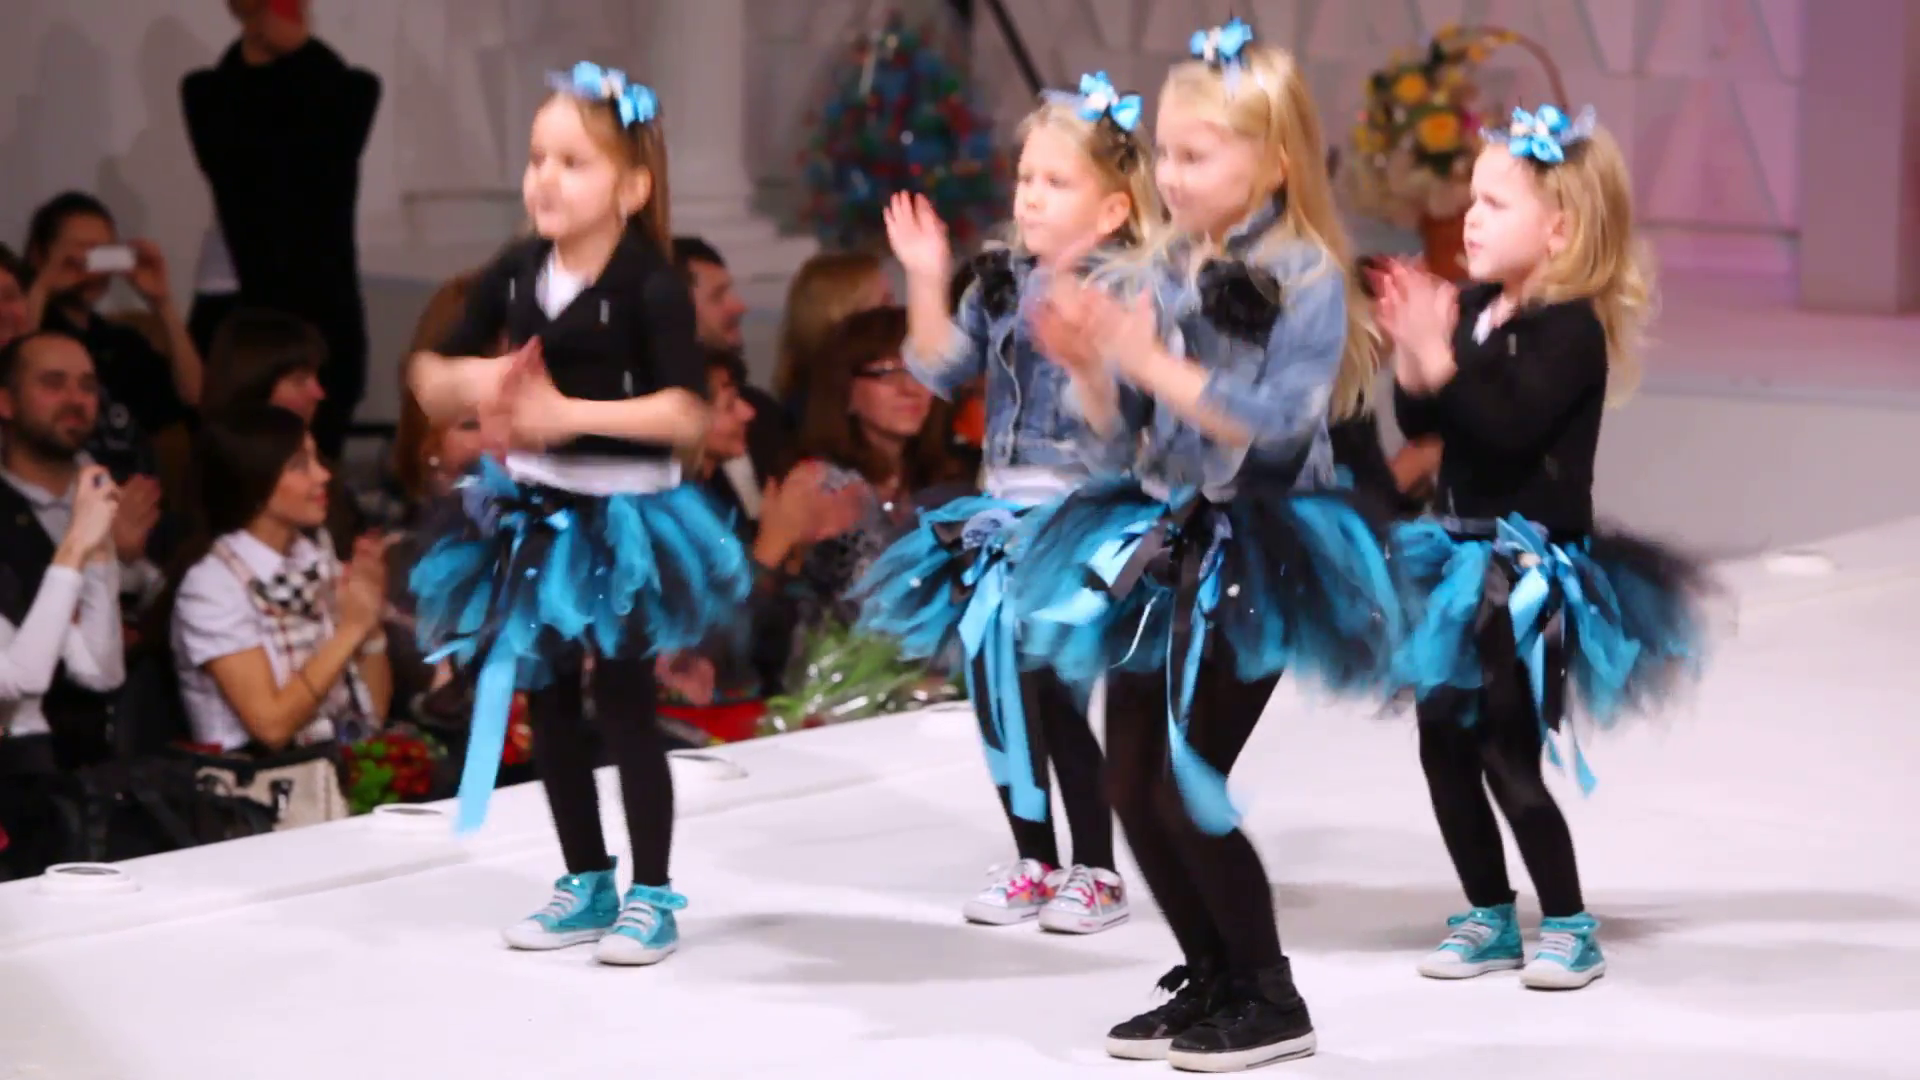 four-cute-little-girls-dancing-and-singing-on-the-stage_x1h3u3ocd__F0000.